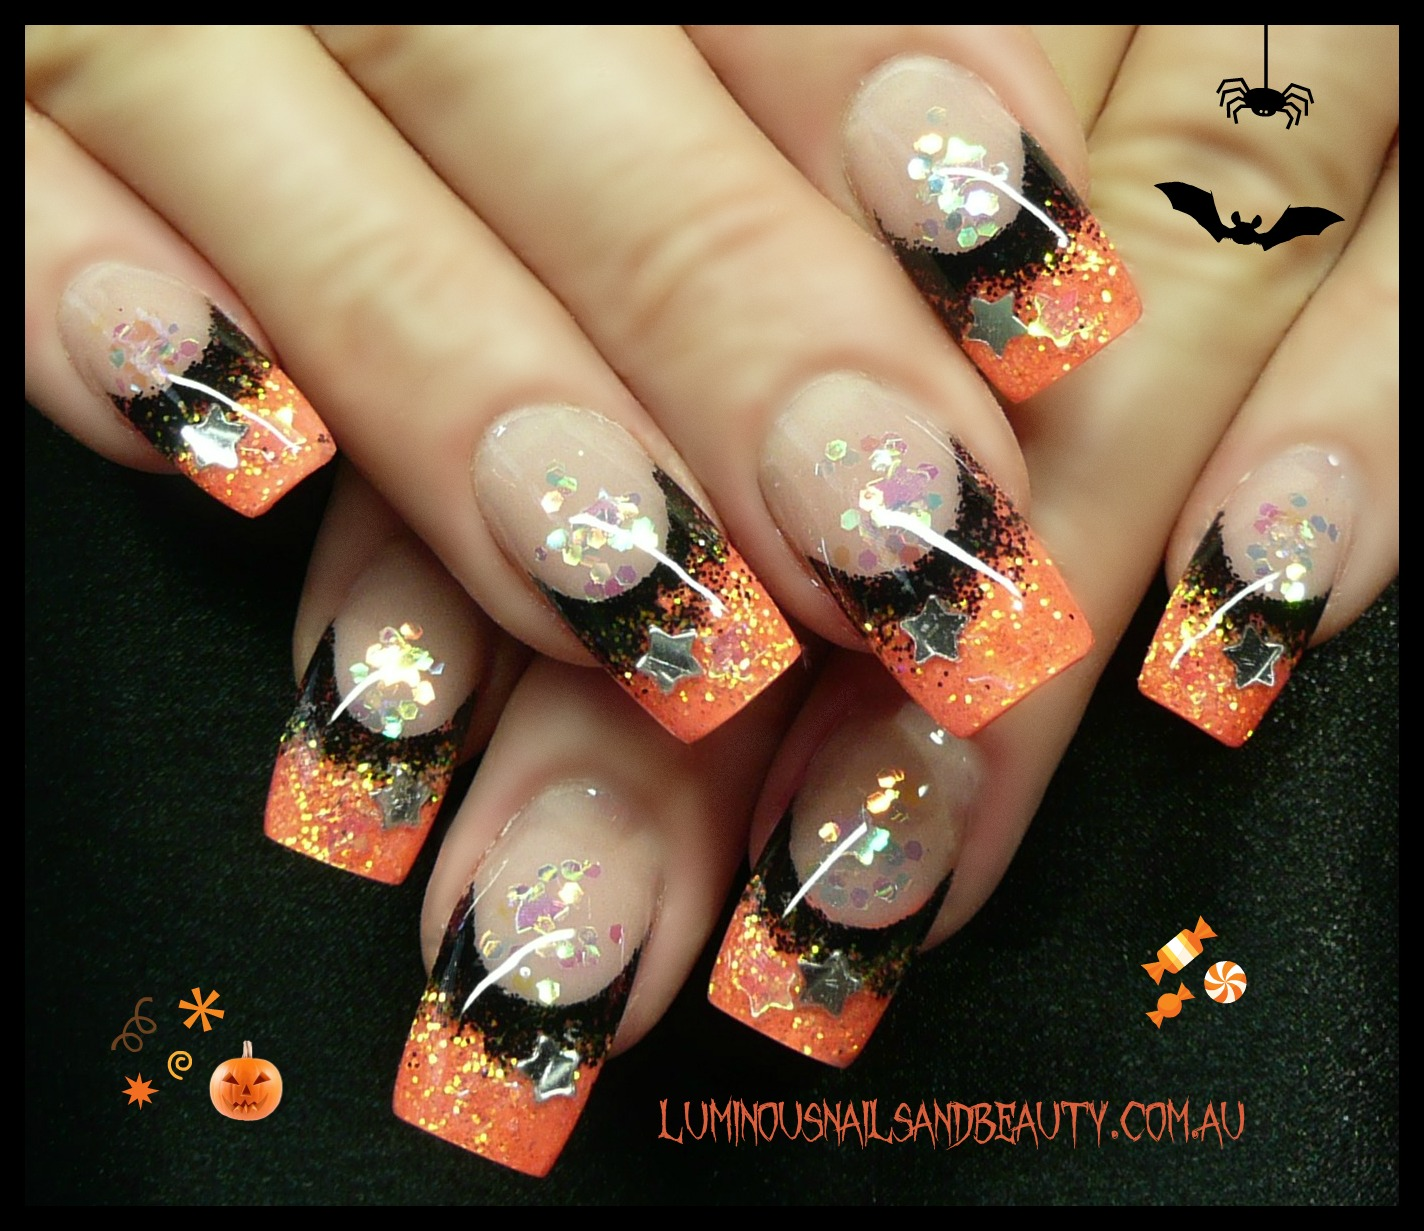 Halloween Nail Art: Luminous Nails: October 2012